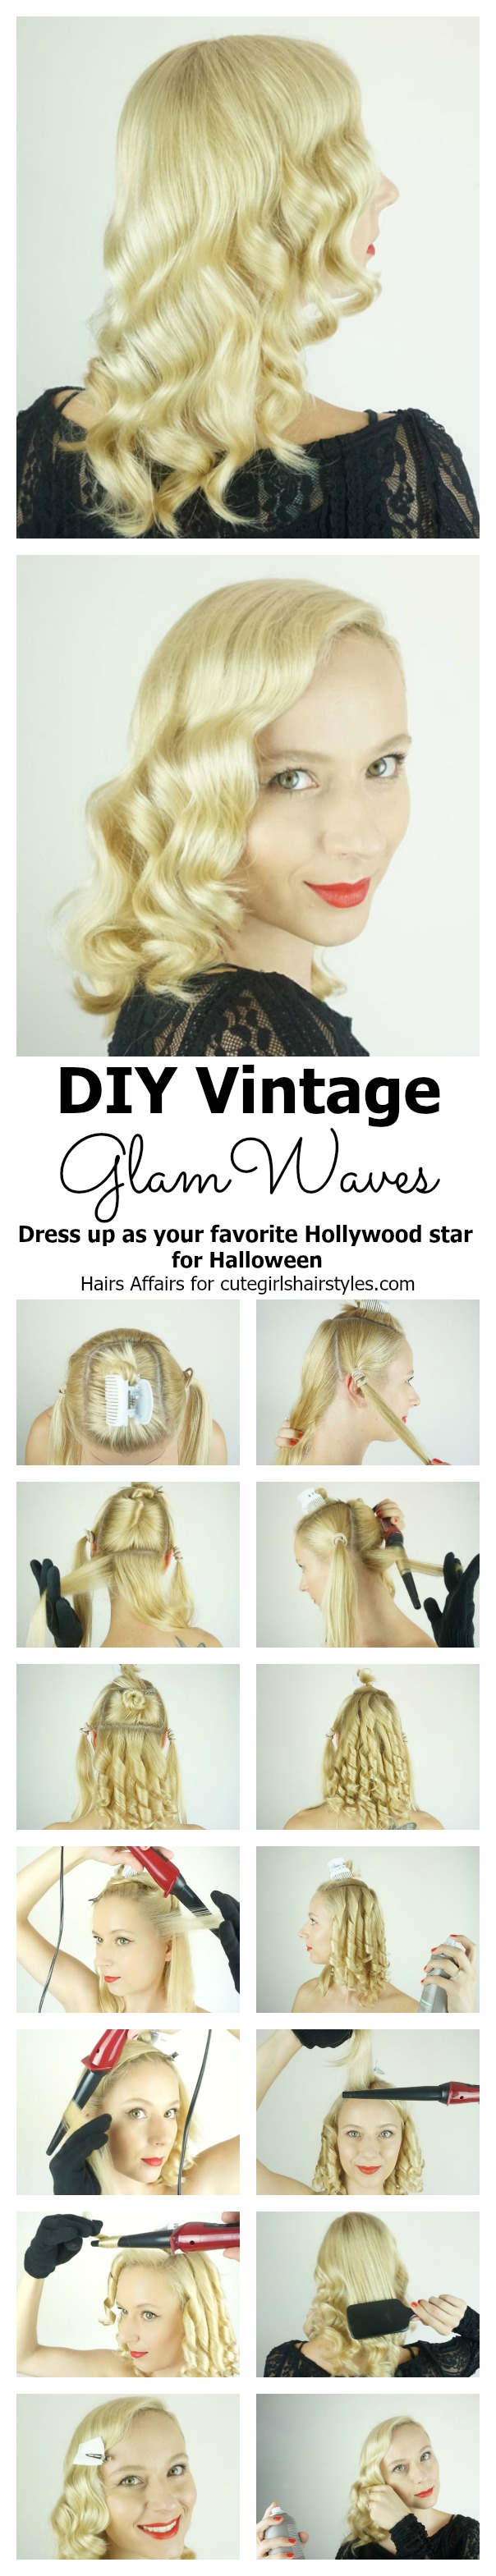 DIY Vintage glam waves | CGH Lifestyle